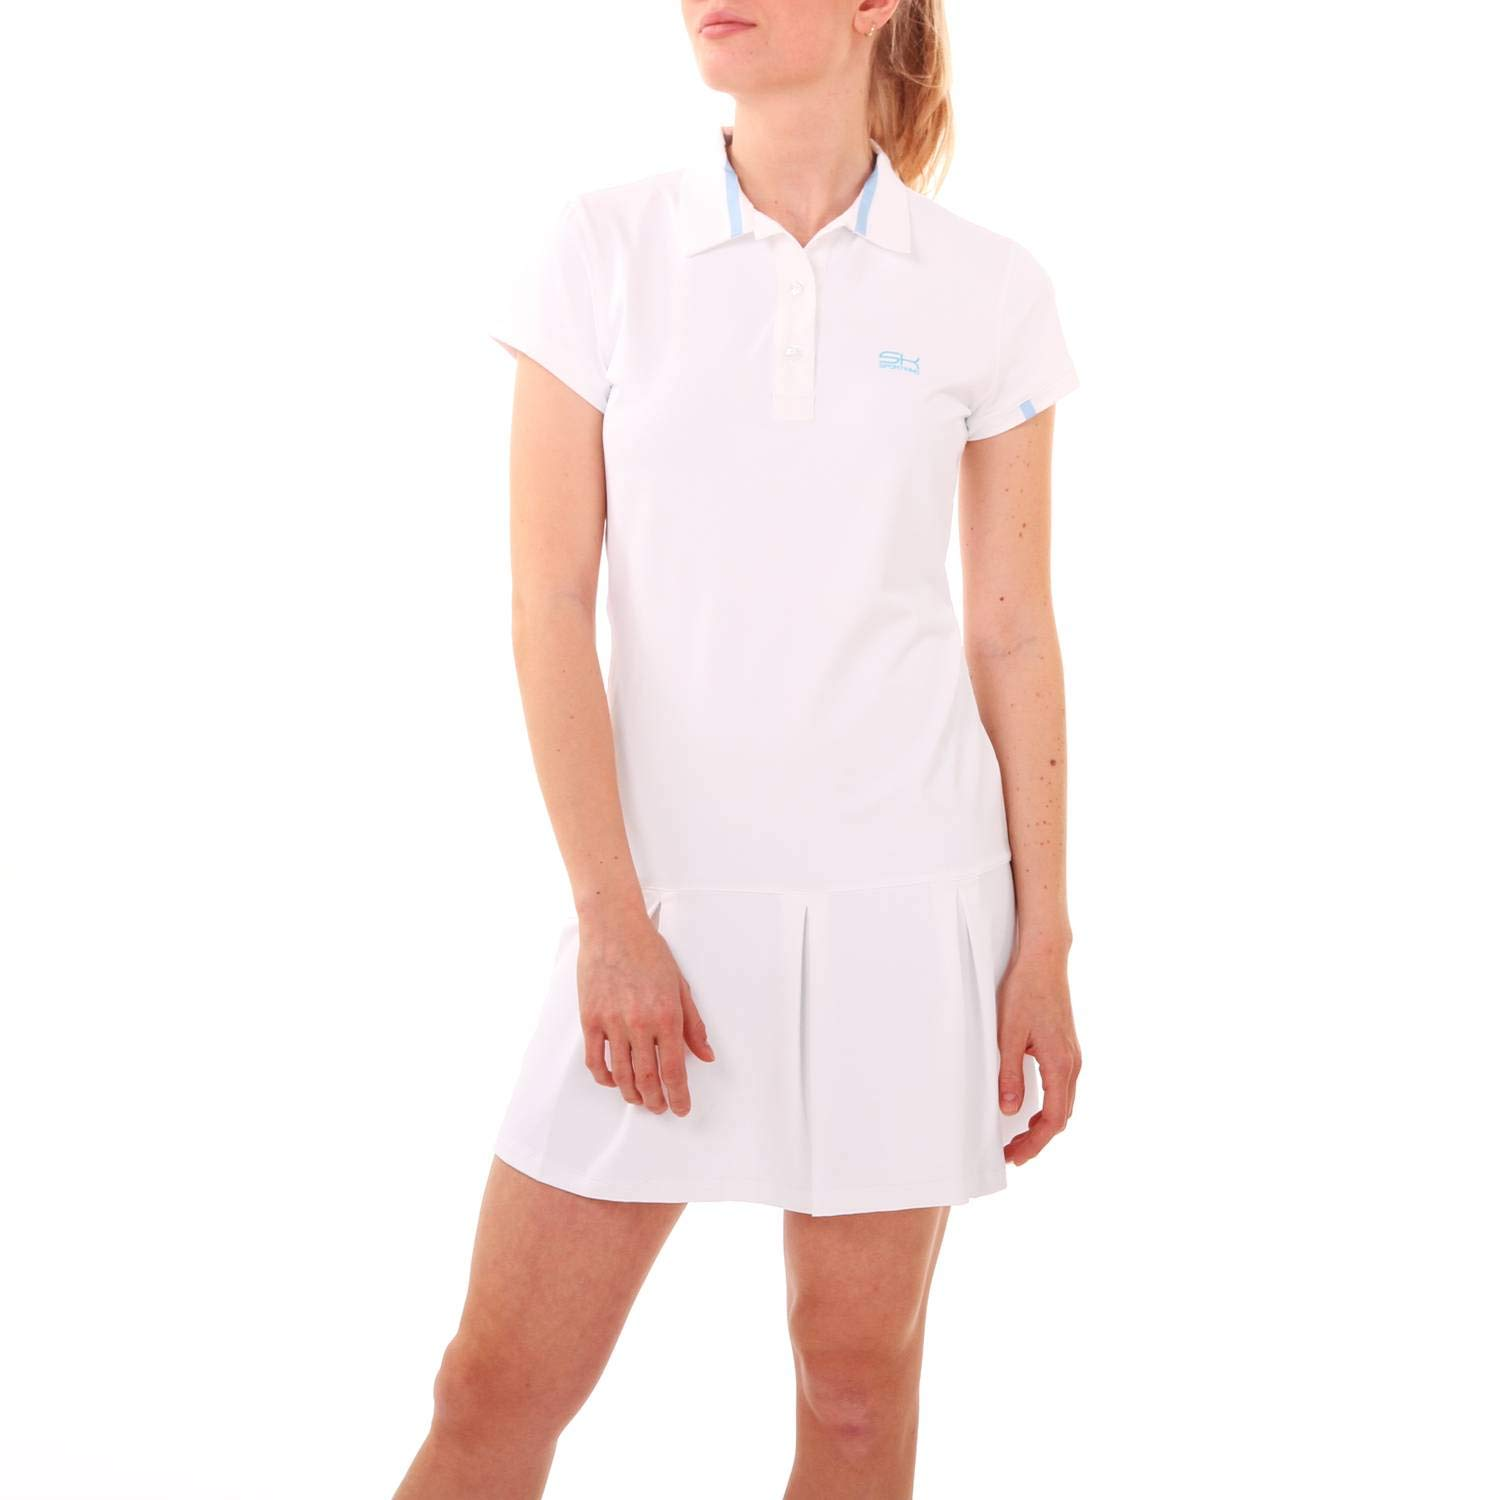 SPORTKIND Girls /& Ladies Sleeveless Pleated Tennis UPF 50+ Sun Protection Quick Dry Breathable Sailing Golf Leisure Polo Dress